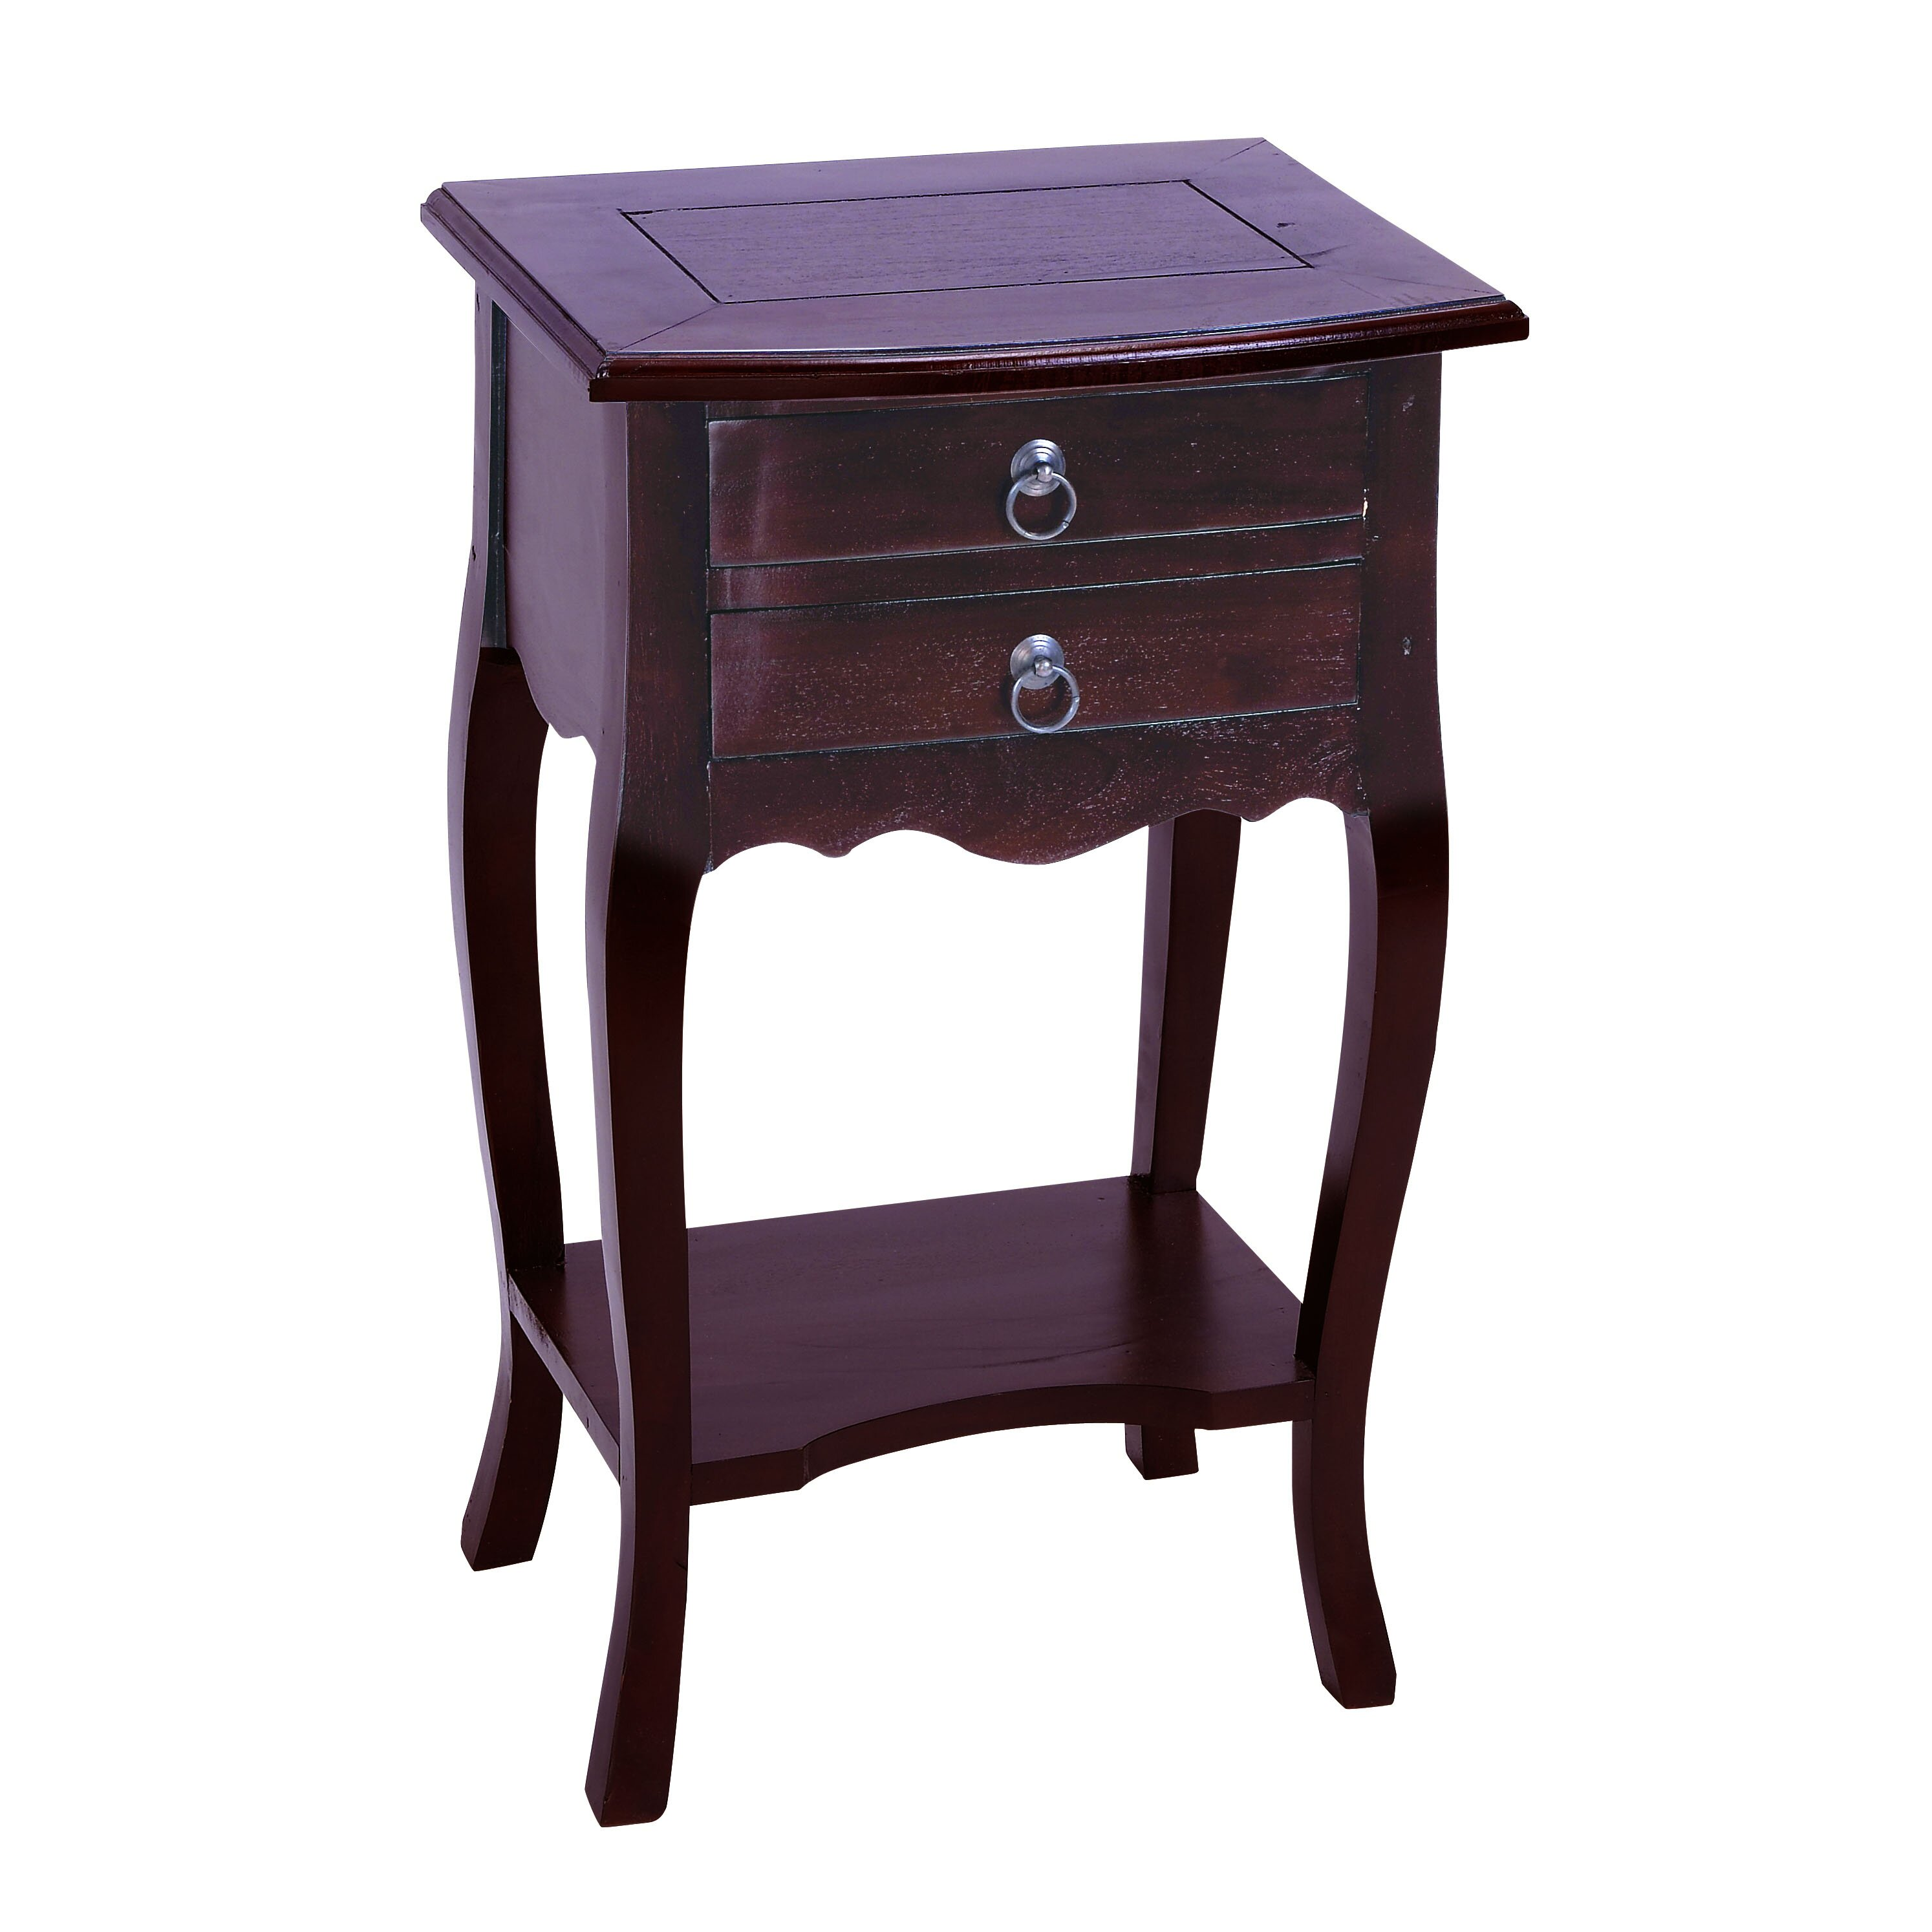 Woodland imports functional design end table reviews for Functional side table